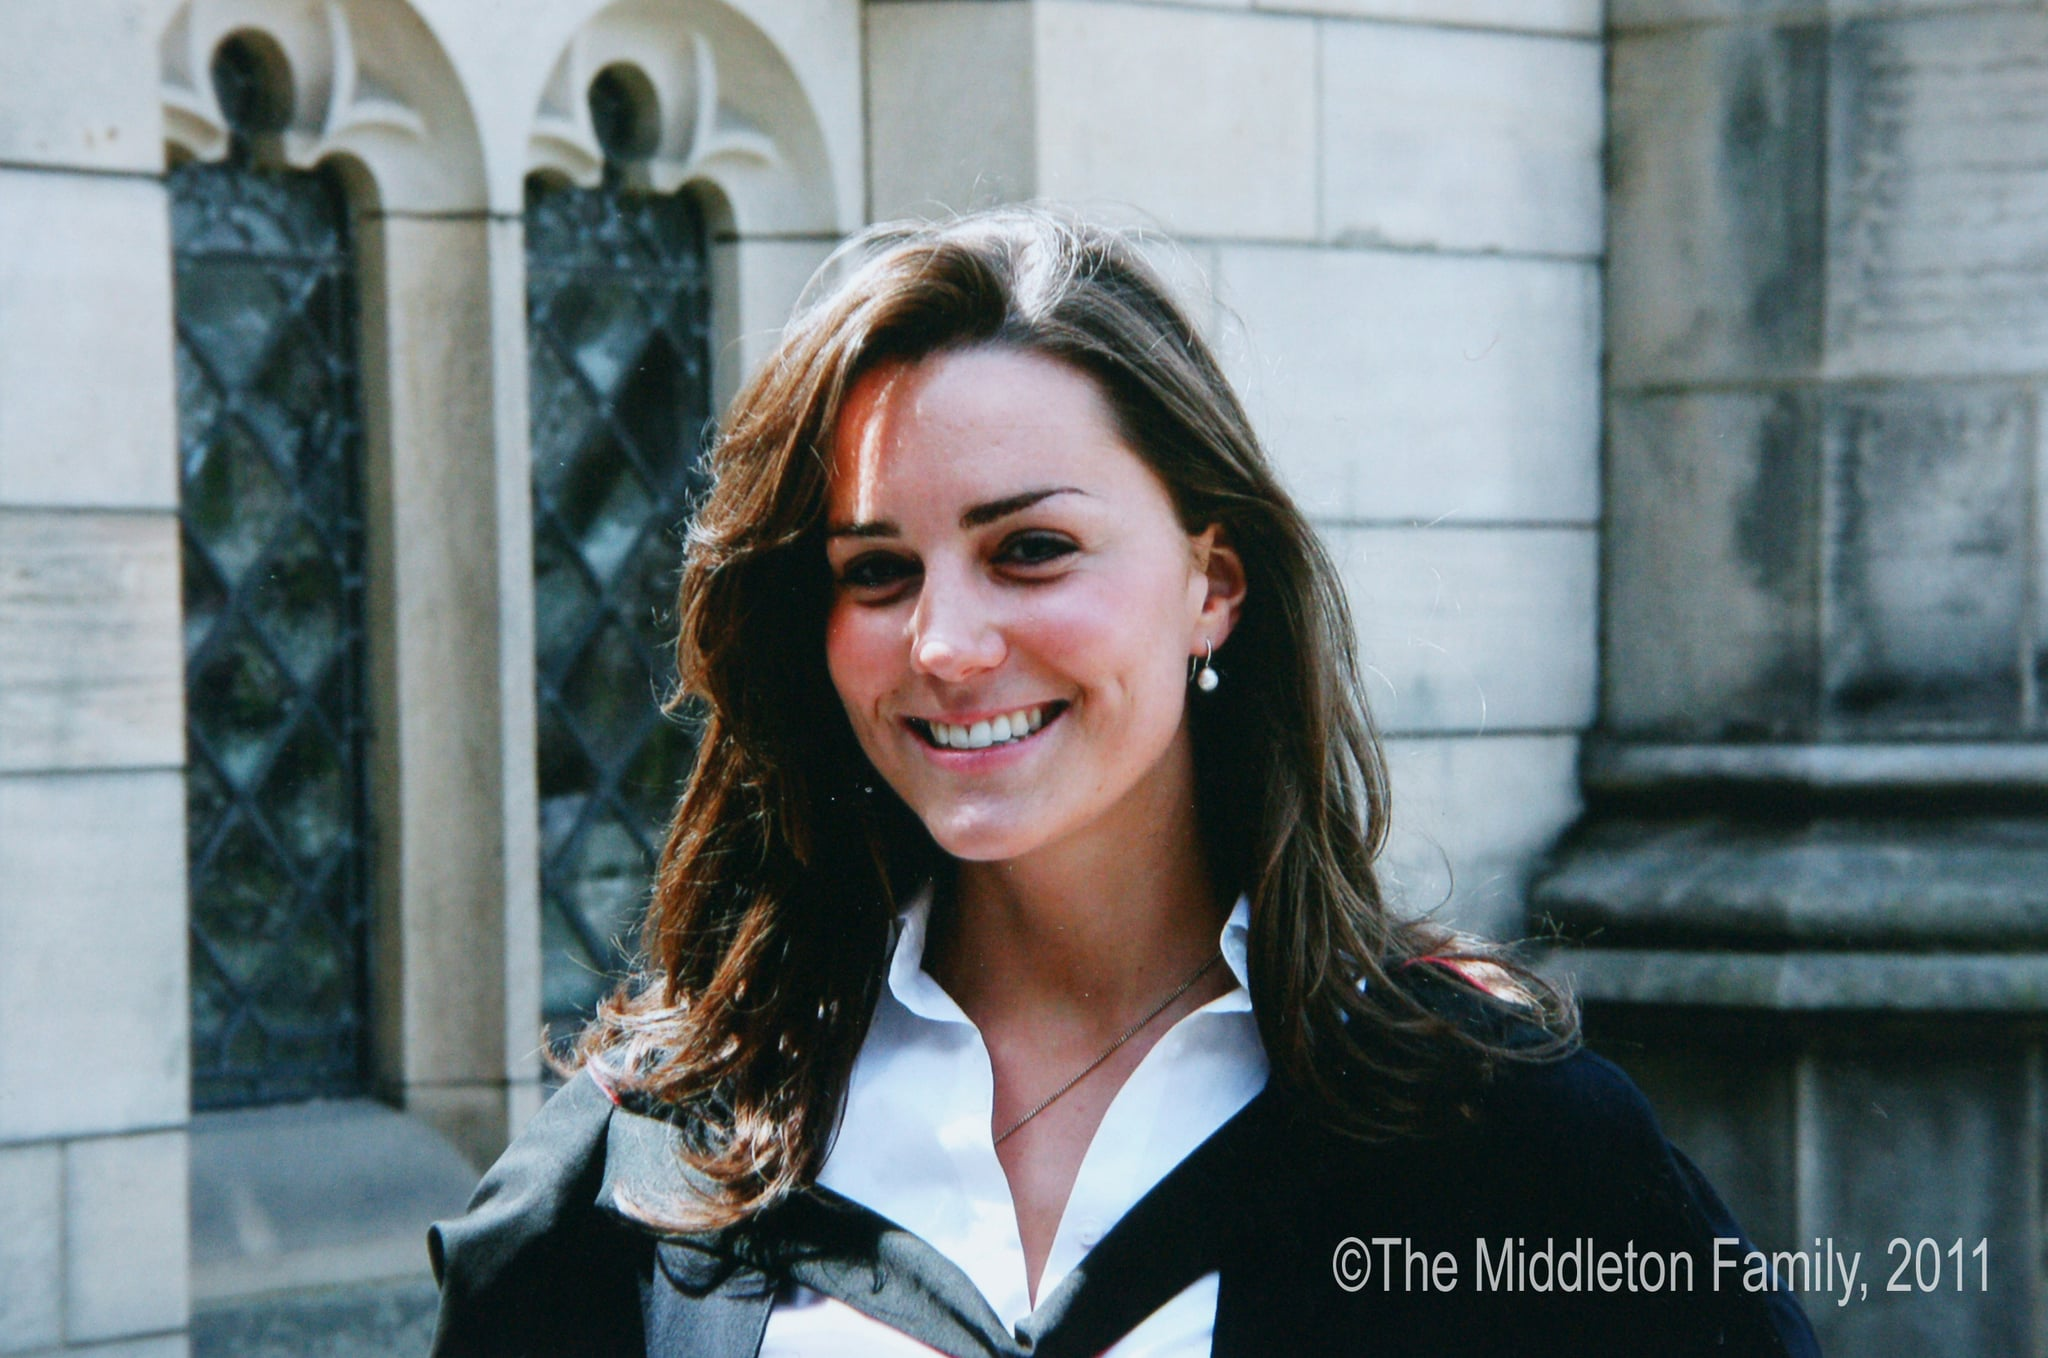 kate smiled after graduating from st andrews university in kate smiled after graduating from st andrews university in scotland